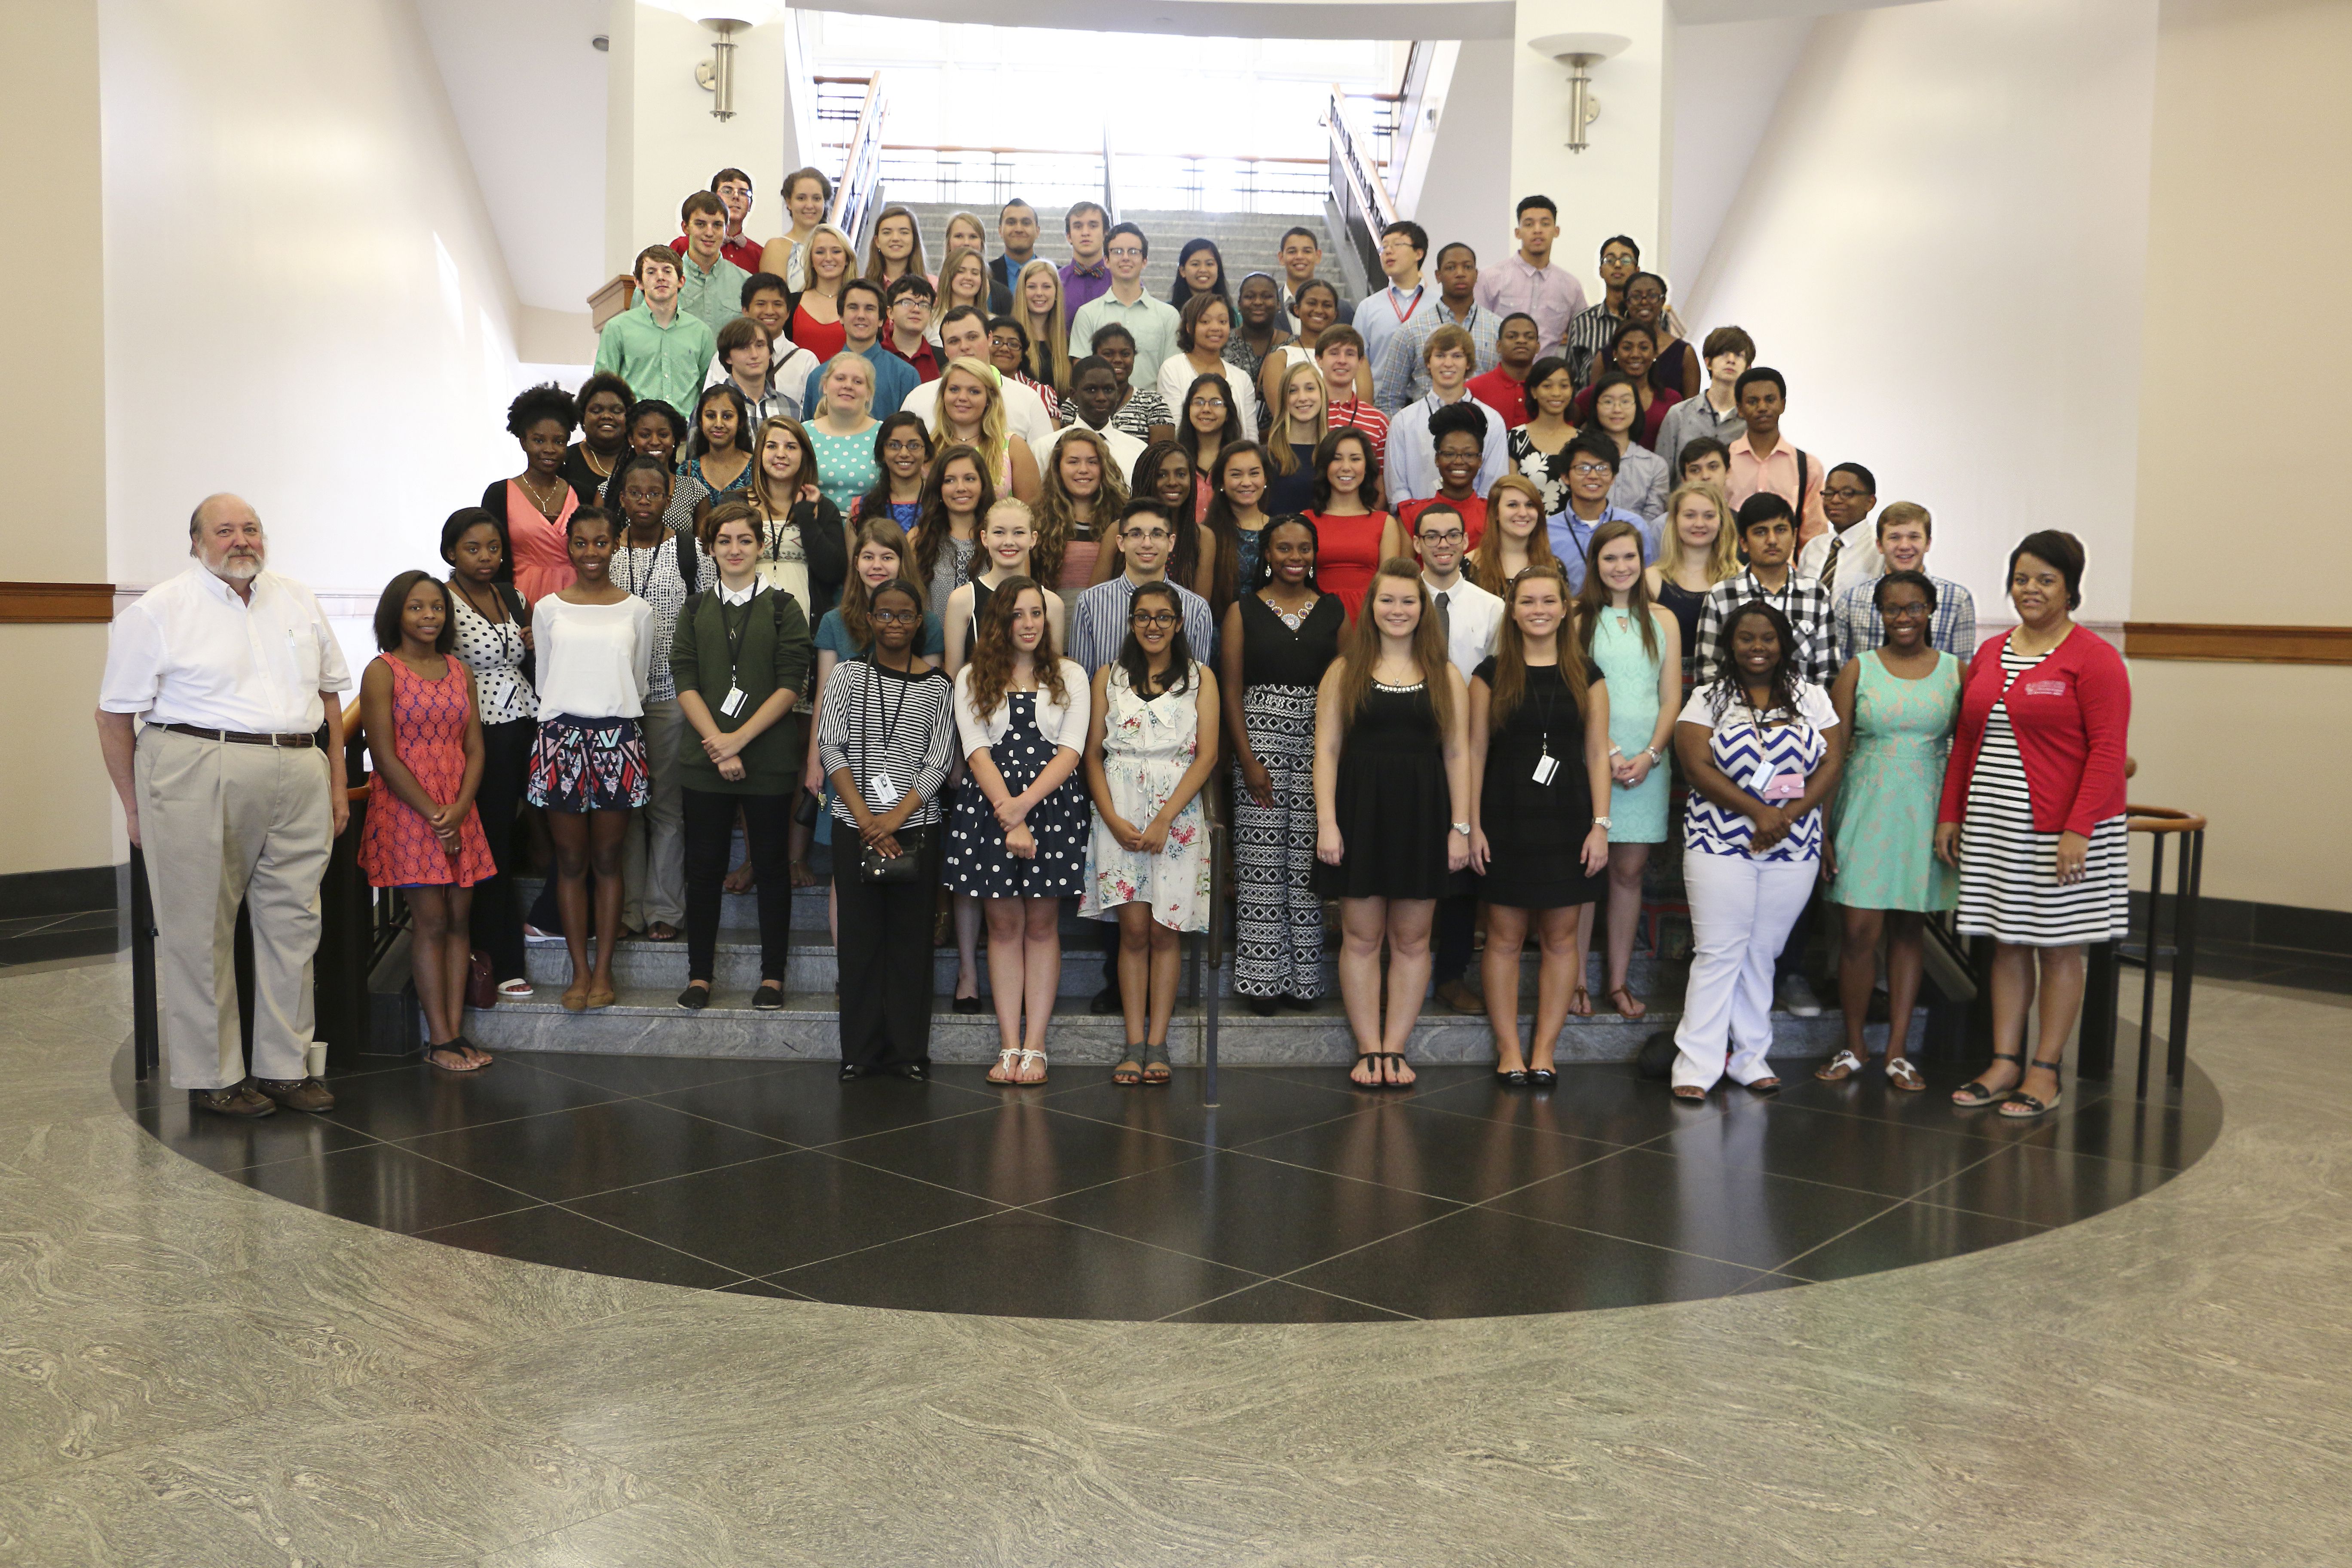 The 2015 class of the CAES Young Scholars Program spent this summer performing research in labs and fields in Griifin, Tifton and Athens.